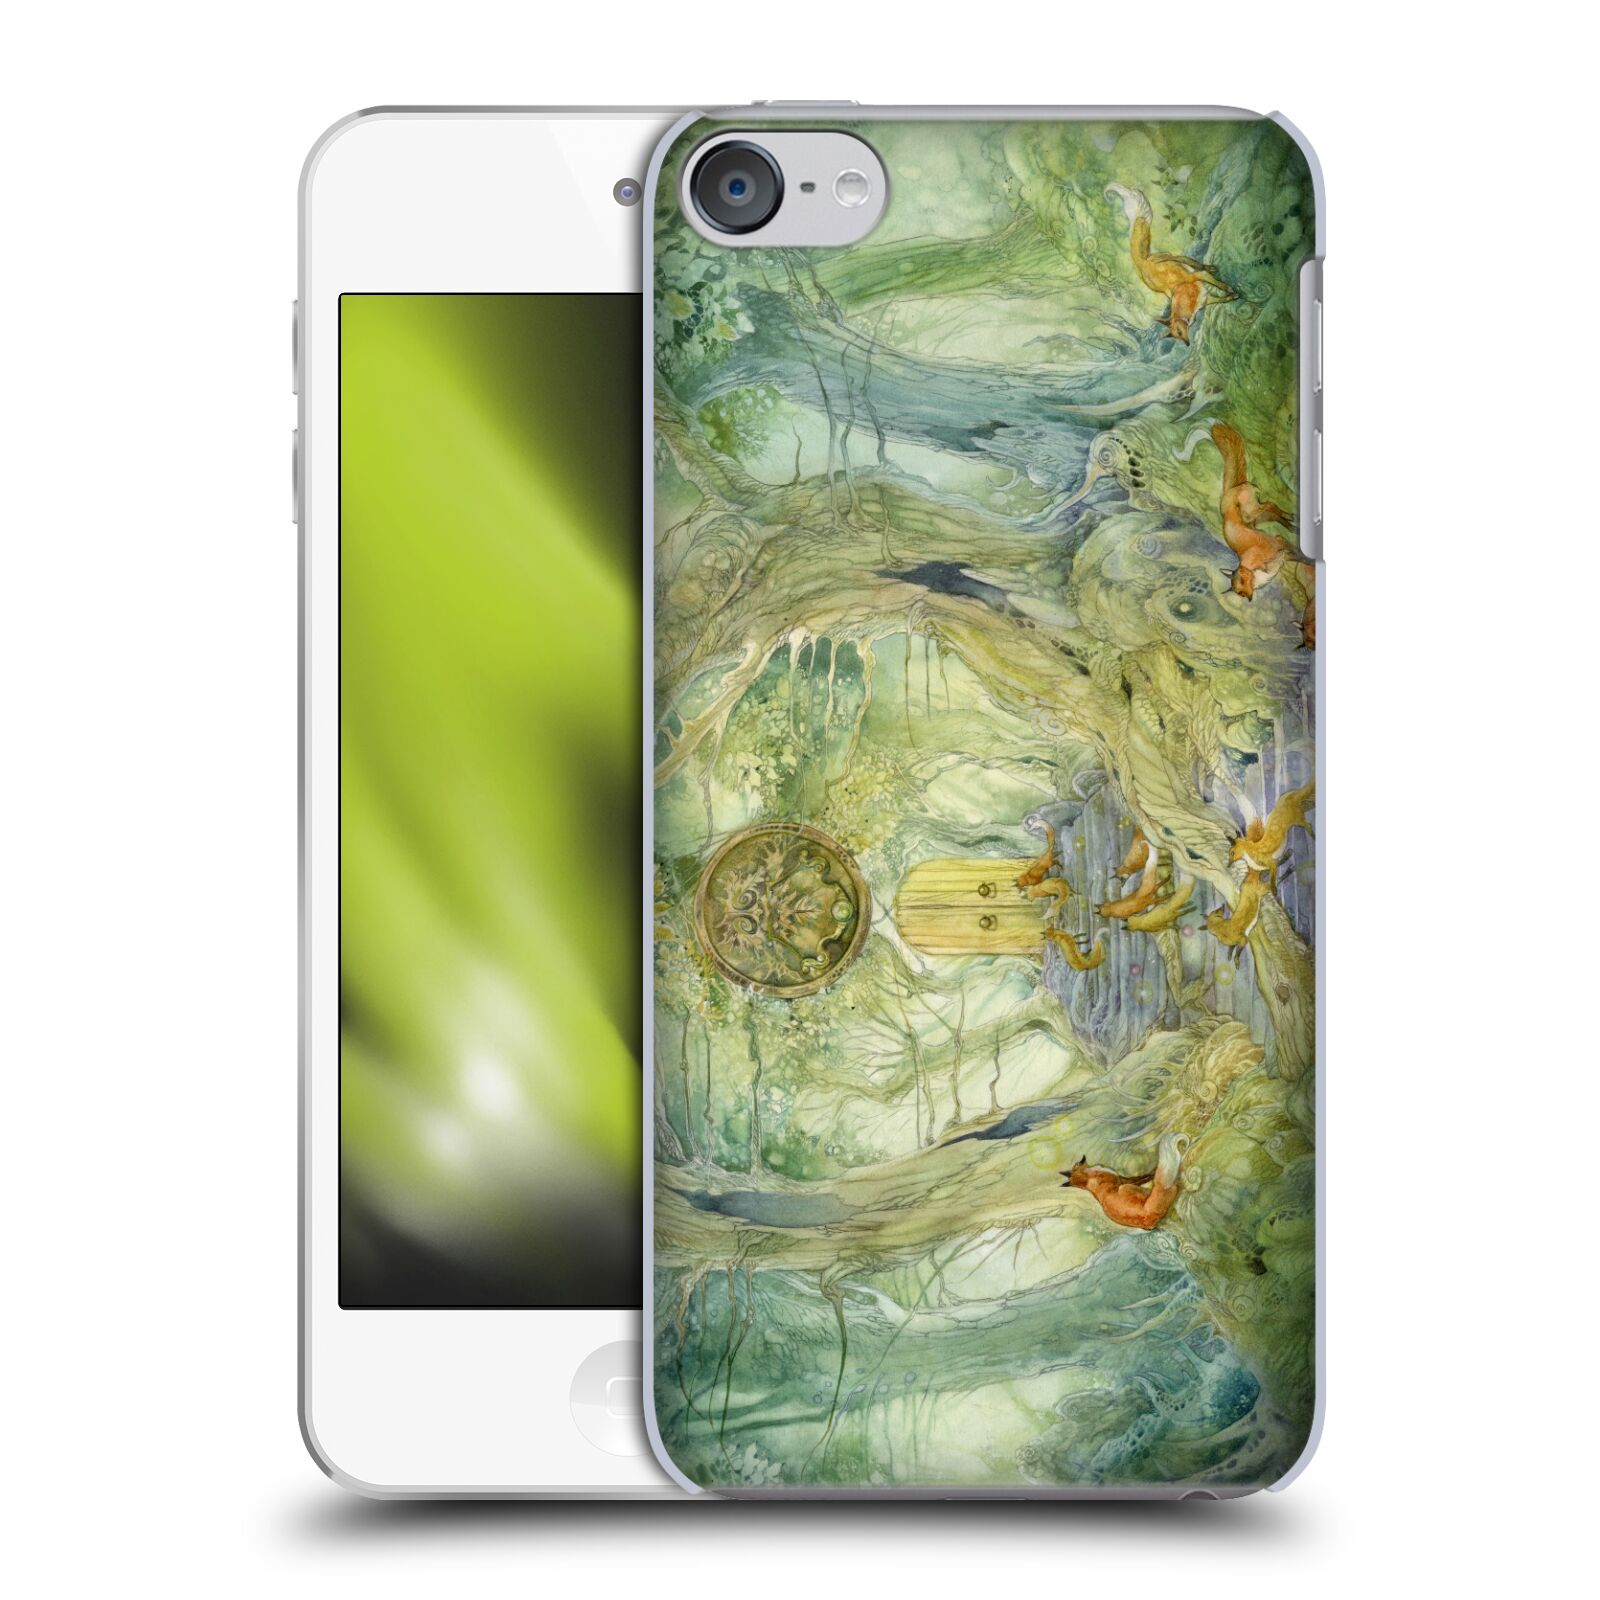 OFFICIAL-STEPHANIE-LAW-DESCANTS-AND-CADENCES-BACK-CASE-FOR-APPLE-iPOD-TOUCH-MP3